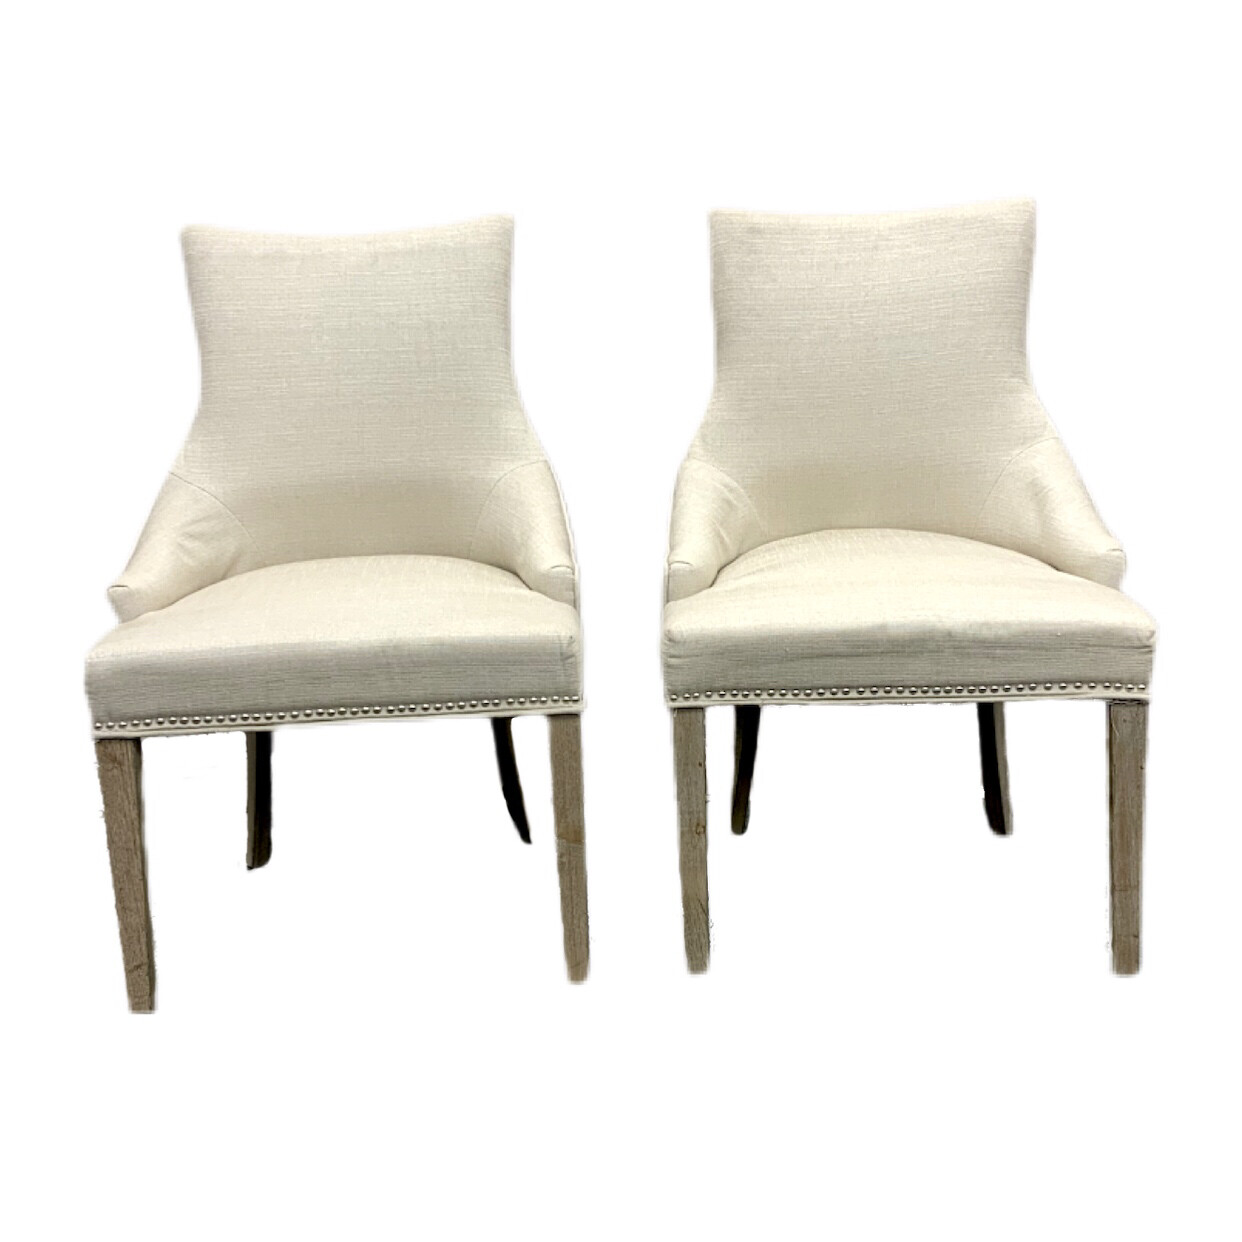 Pair of Cream Upholstered Dining Chairs